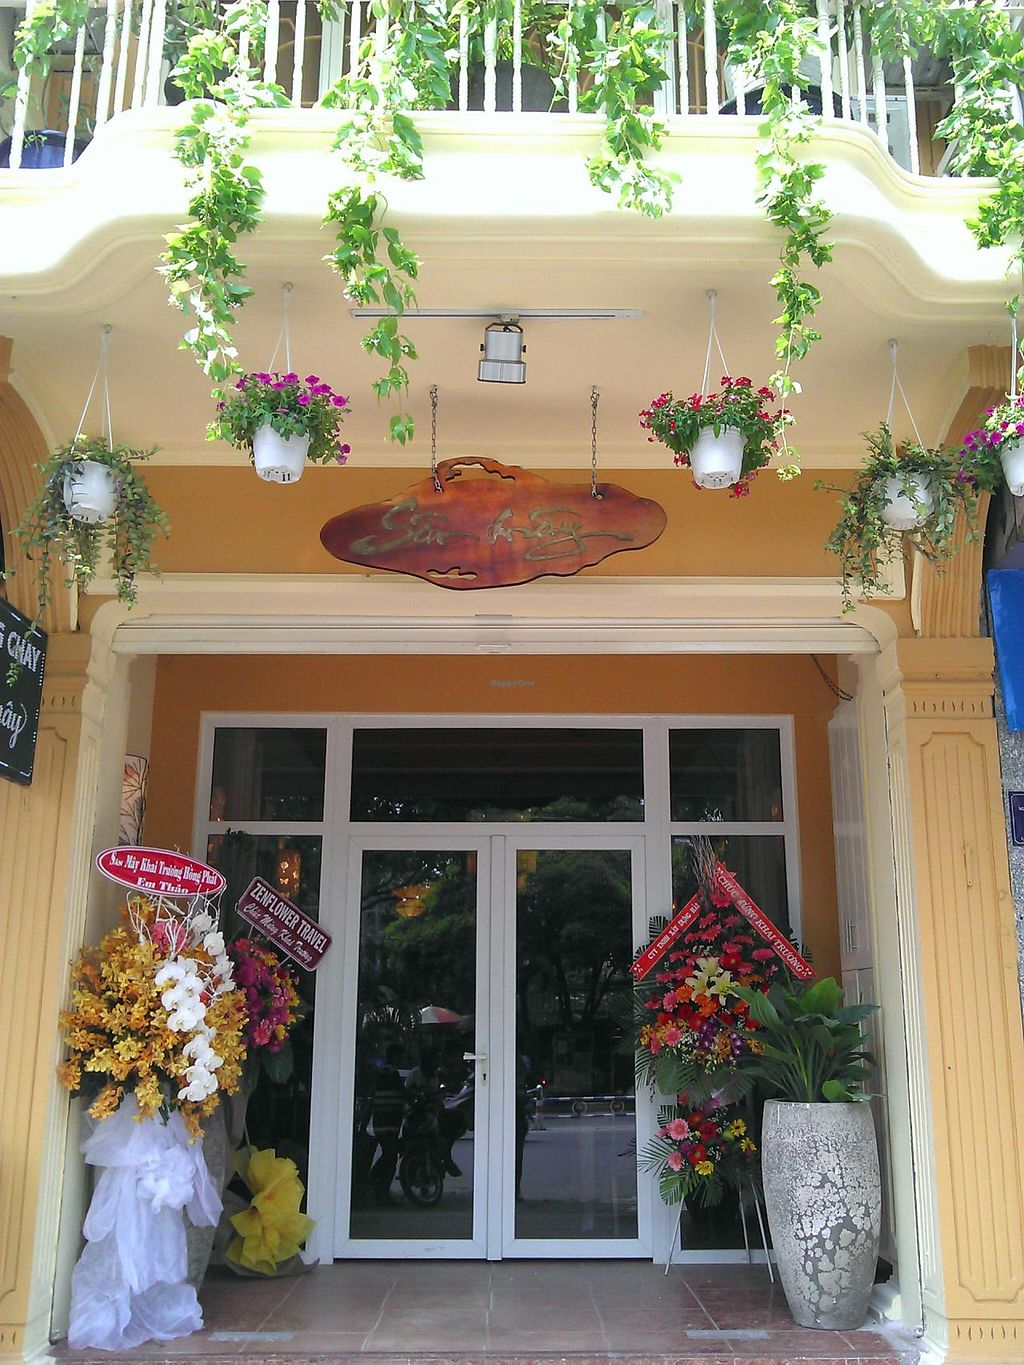 """Photo of San May - Q10  by <a href=""""/members/profile/HuynhHuuDanh"""">HuynhHuuDanh</a> <br/>They are moving to a new place. Its 5 mins from the old one. 771 Lê Hồng Phong, phường 12, quận 10, Ho Chi Minh City, Vietnam +84+84 835071628 Hotline: 012-7899-2009 <br/> March 29, 2014  - <a href='/contact/abuse/image/19935/66678'>Report</a>"""